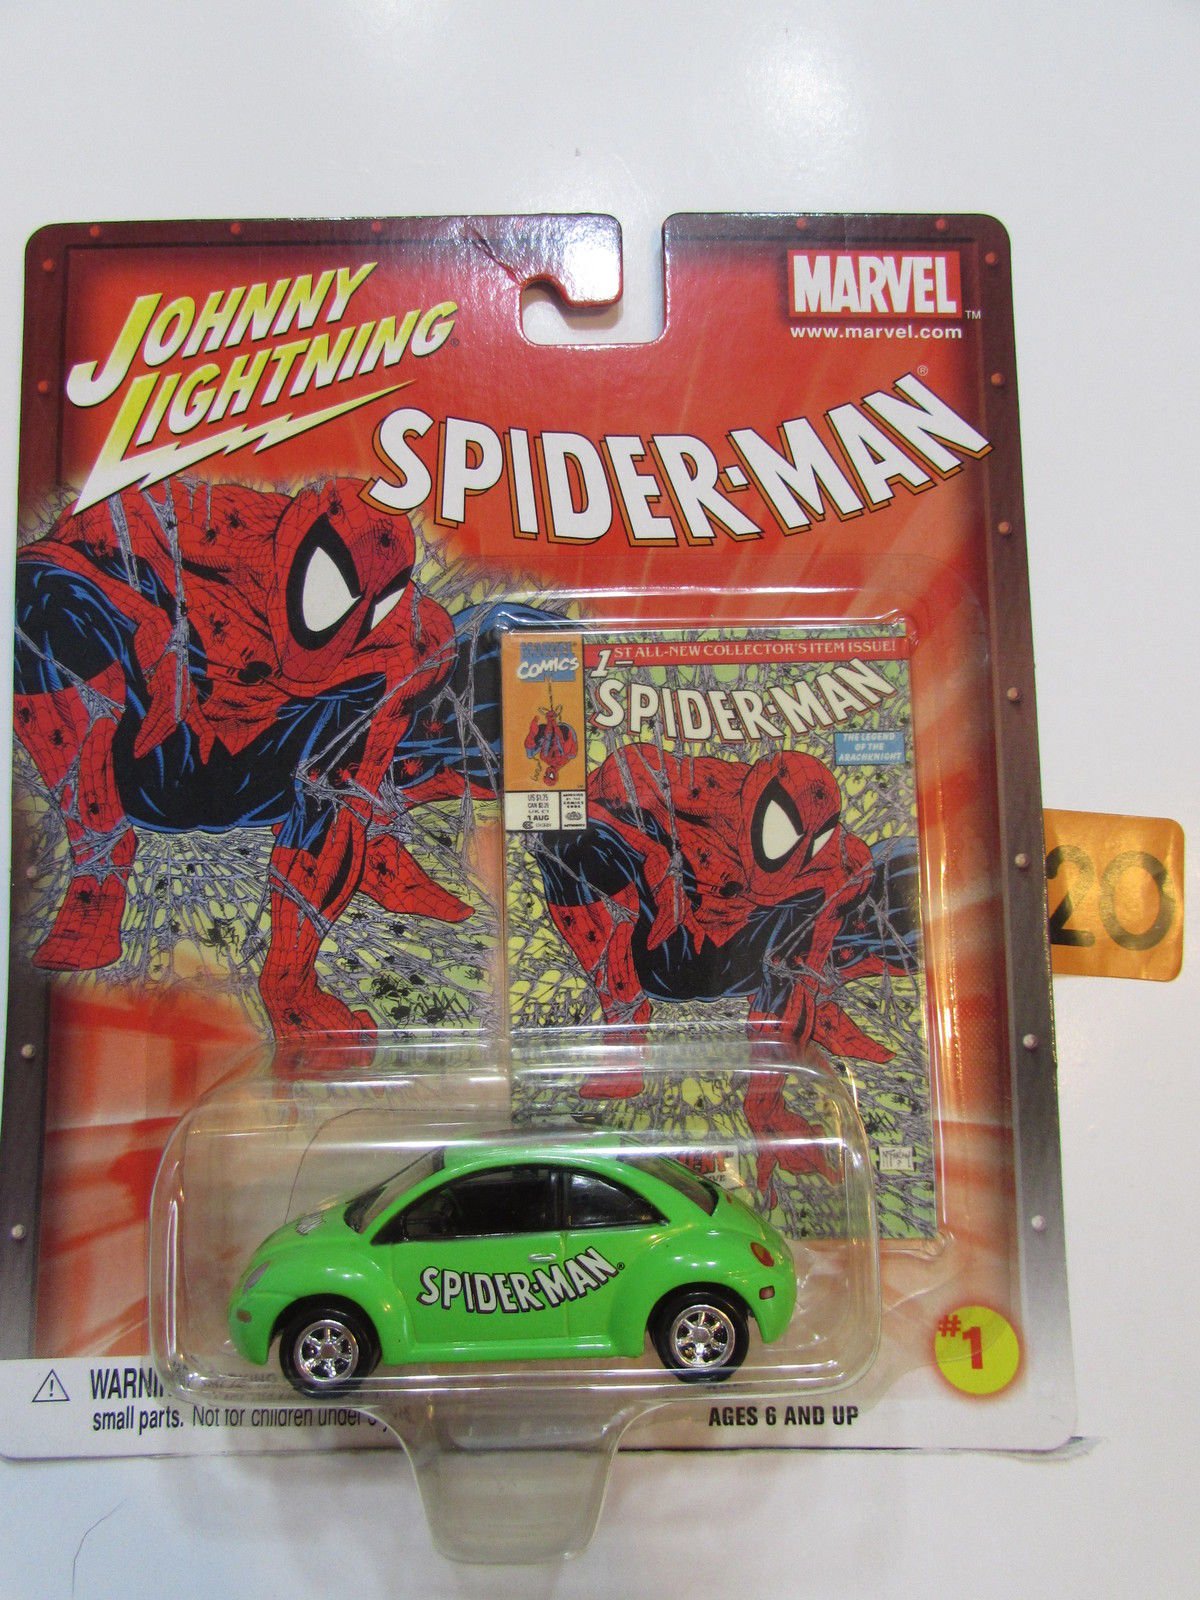 JOHNNY LIGHTNING MARVEL SPIDERMAN - '98 VW BEETLE #1 GREEN